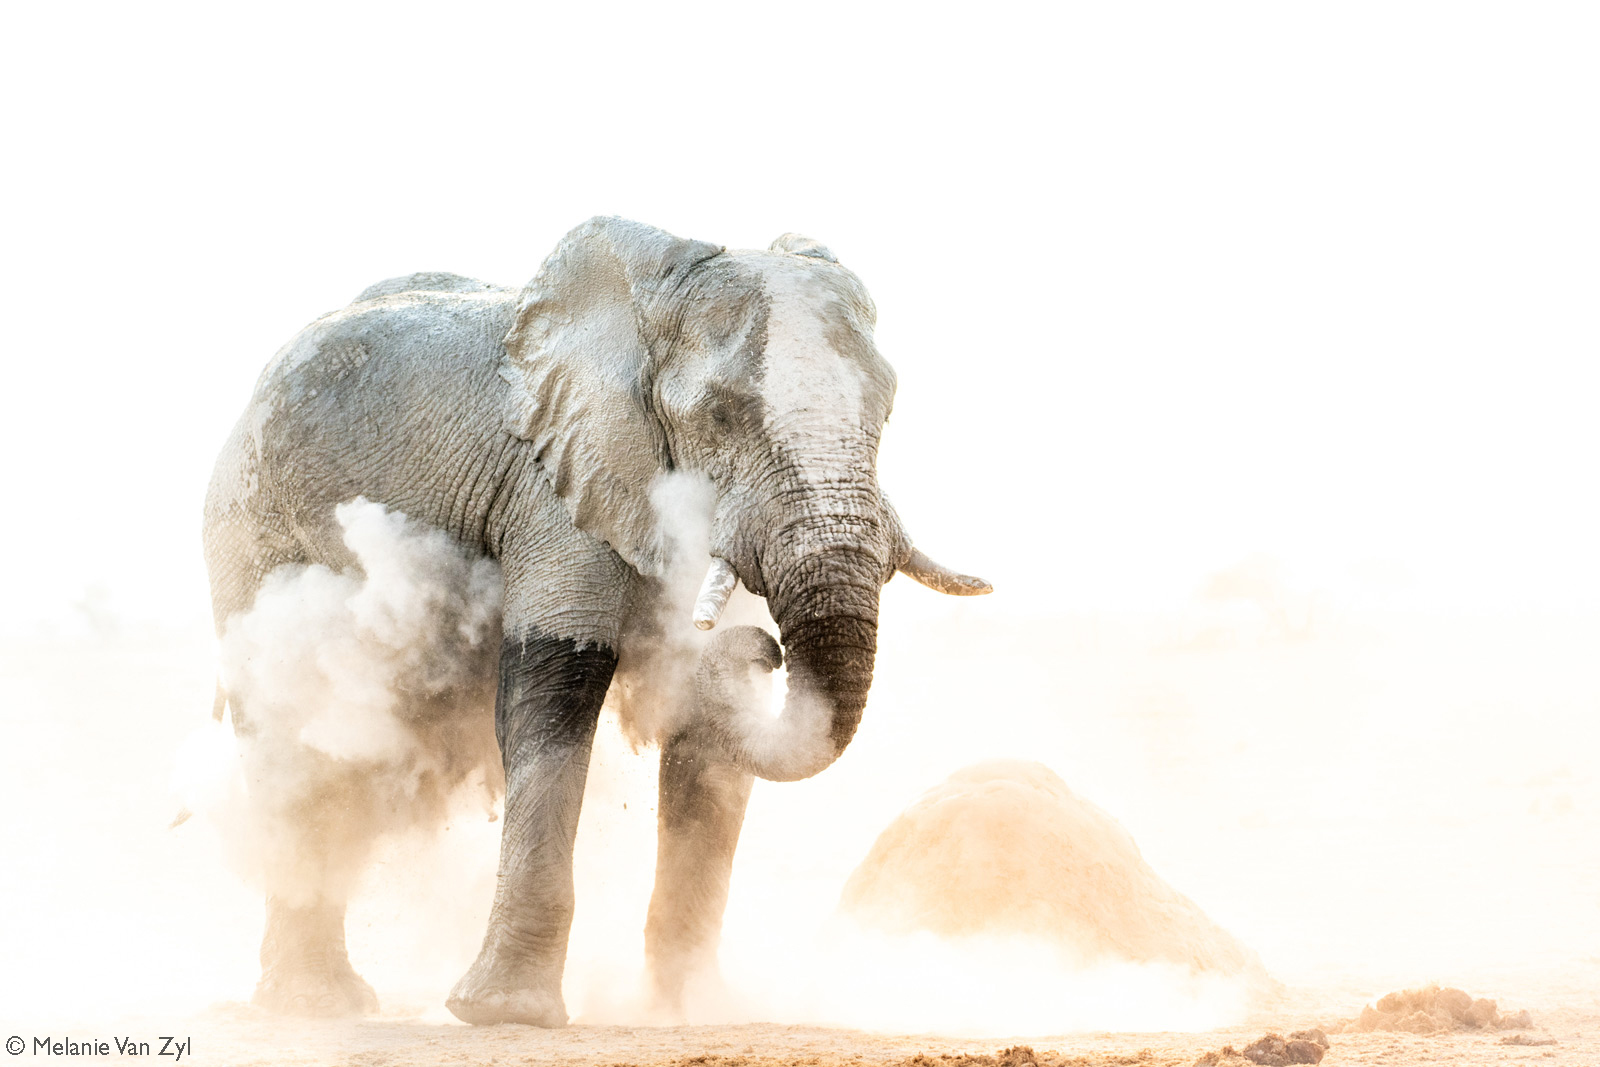 A bull elephant in Nxai Pan douses himself in the white powder so iconic of the Makgadikgadi Salt Pans network in Botswana © Melanie van Zyl